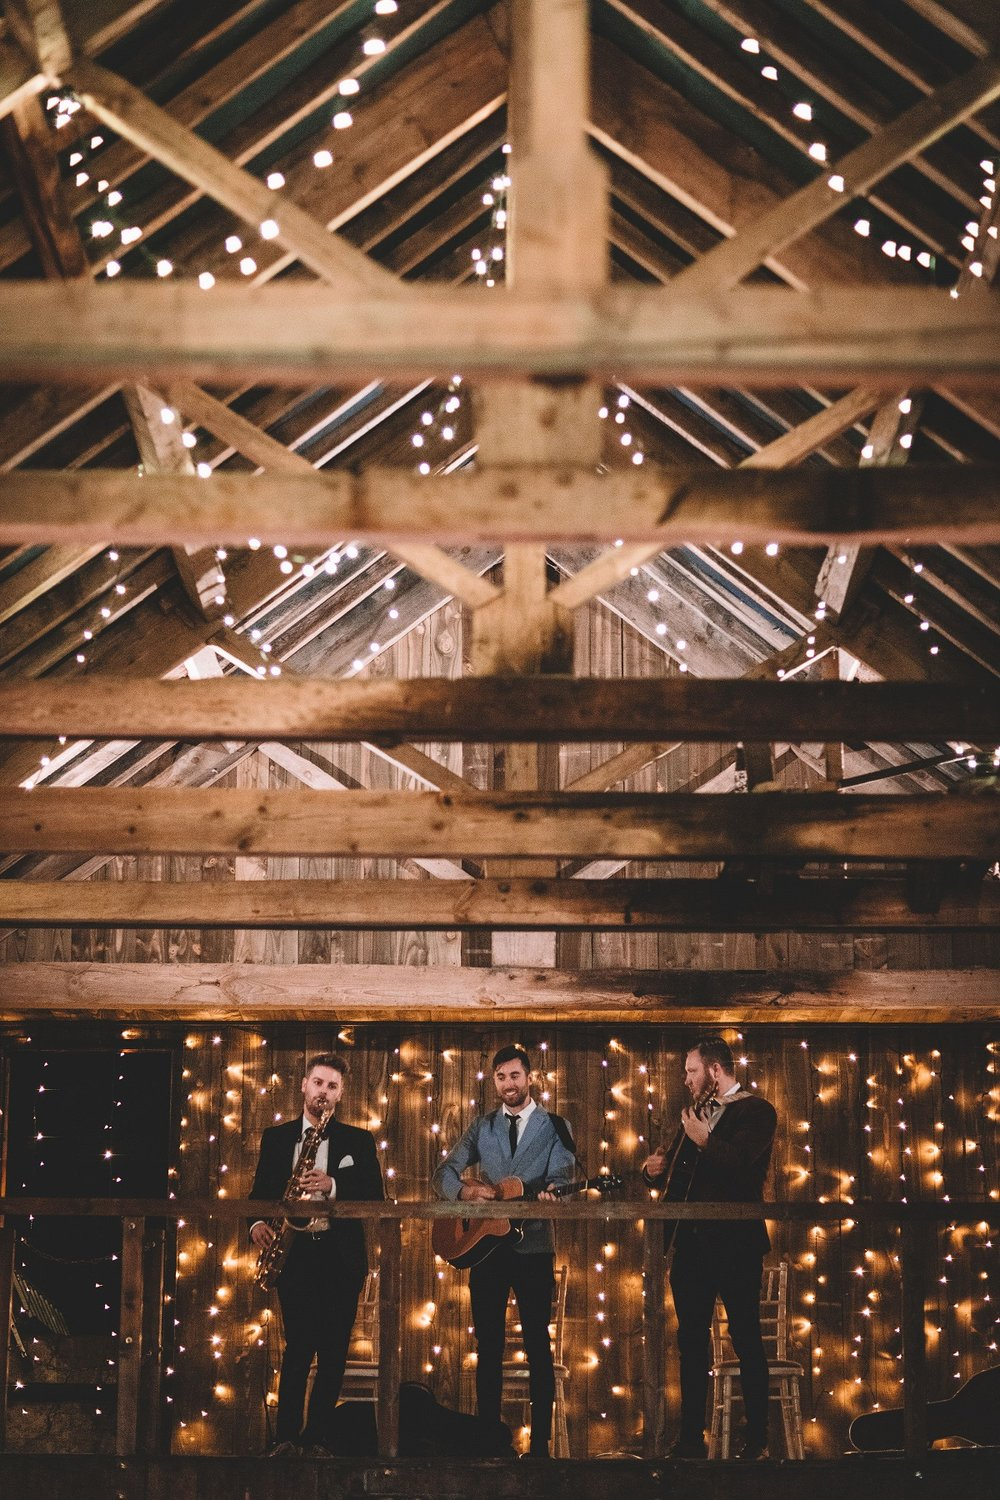 Rachel & Andrew by Lumiere Photographic - three bards play from on high in the Ceremony Barn.jpg